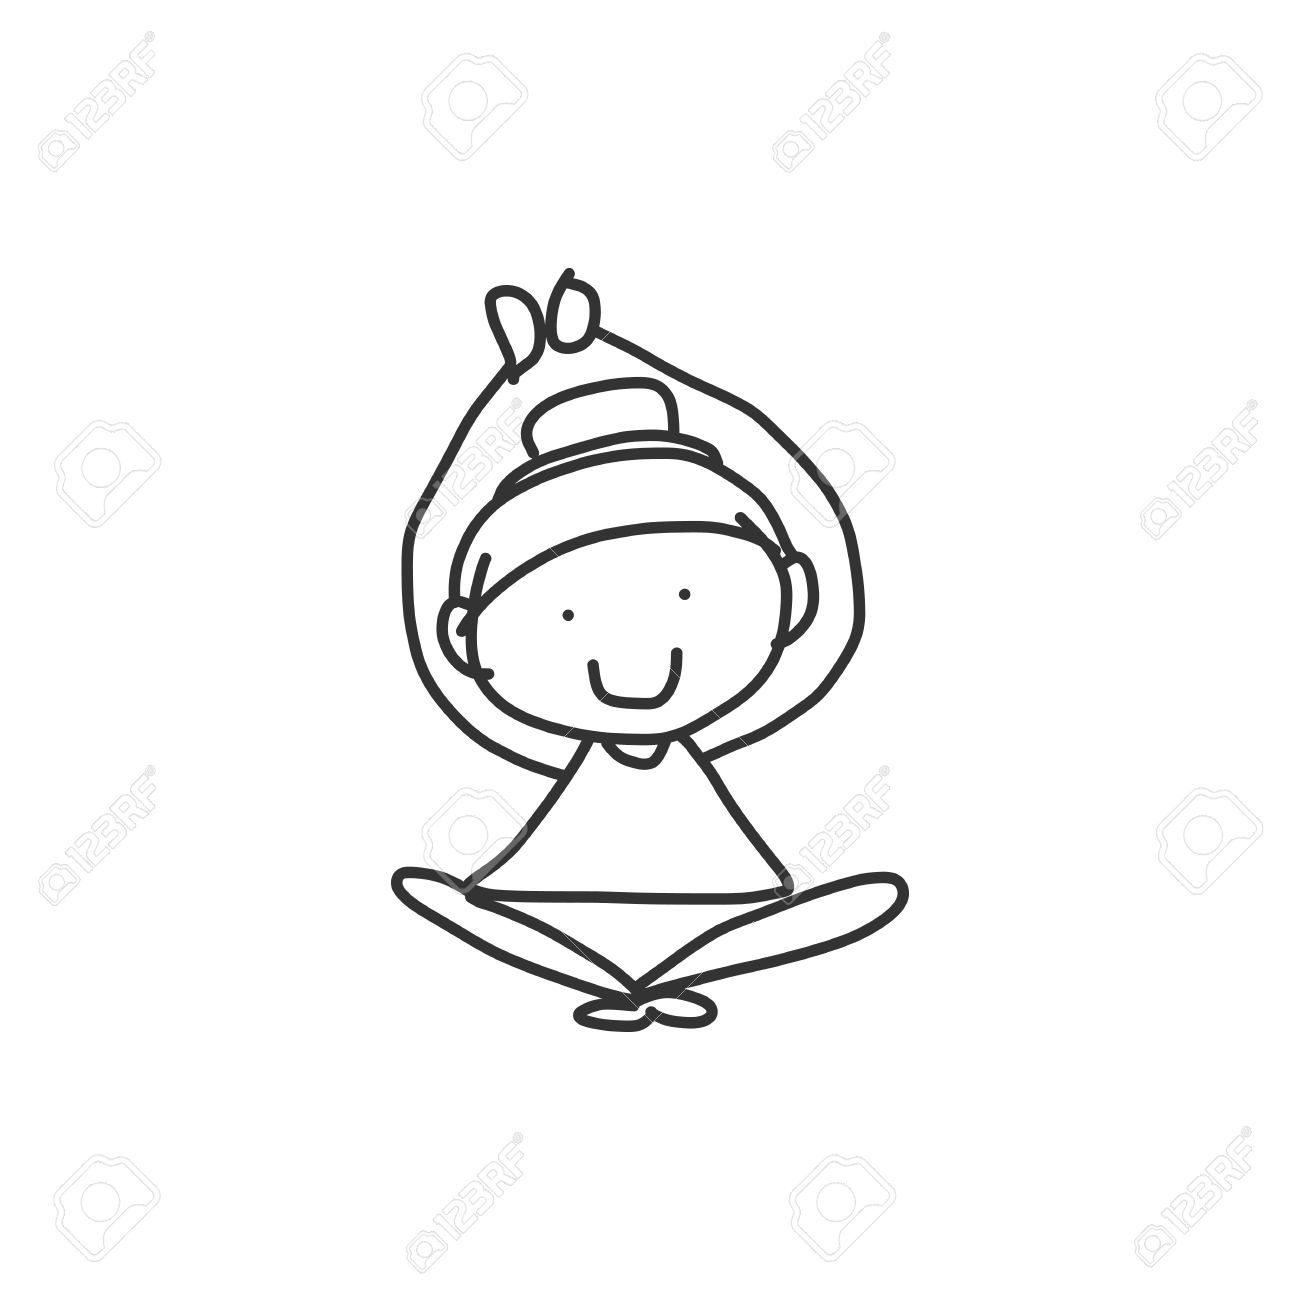 Hand Drawing Cartoon Happy People Yoga Royalty Free Cliparts Vectors And Stock Illustration Image 22348128